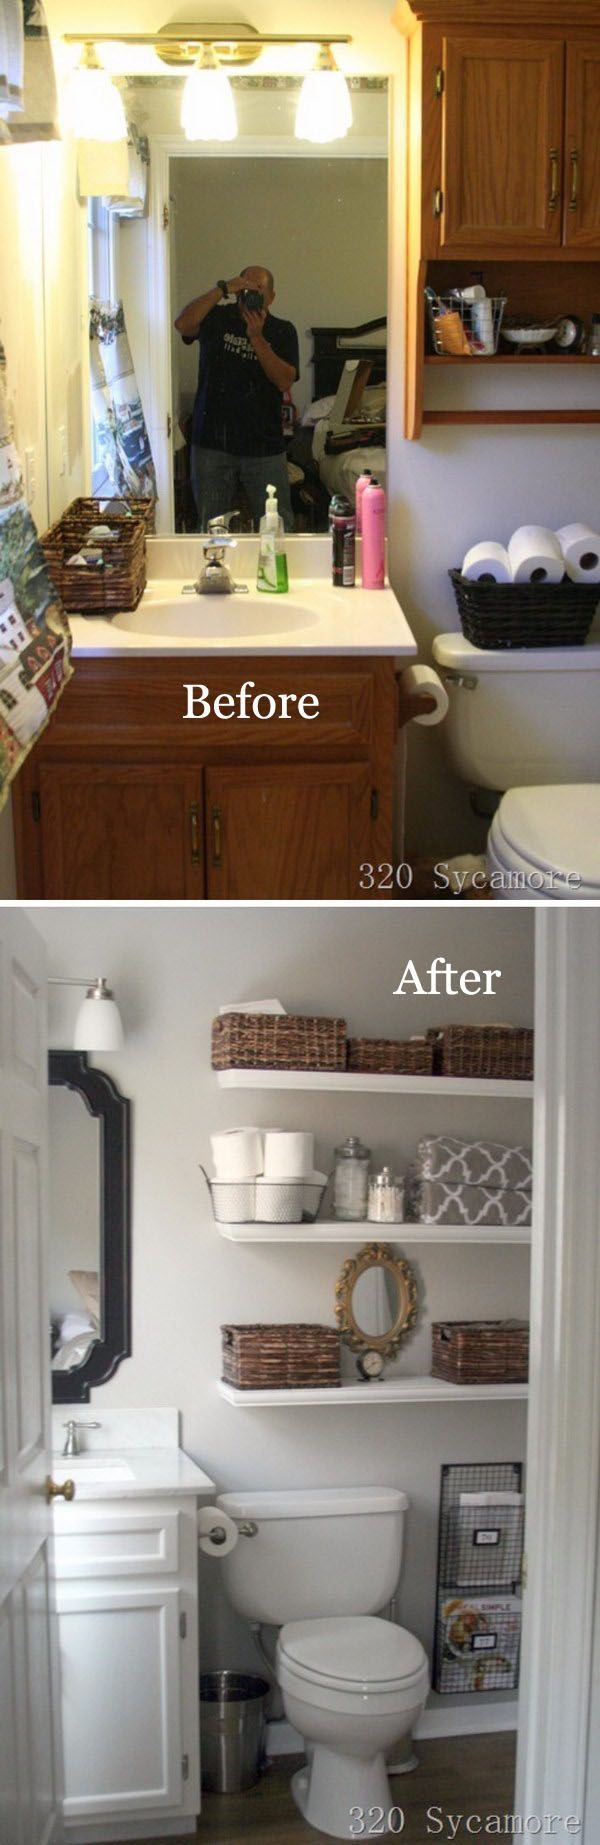 Best Small Master Bathroom Ideas Ideas On Pinterest Small - Diy bathroom remodel for small bathroom ideas